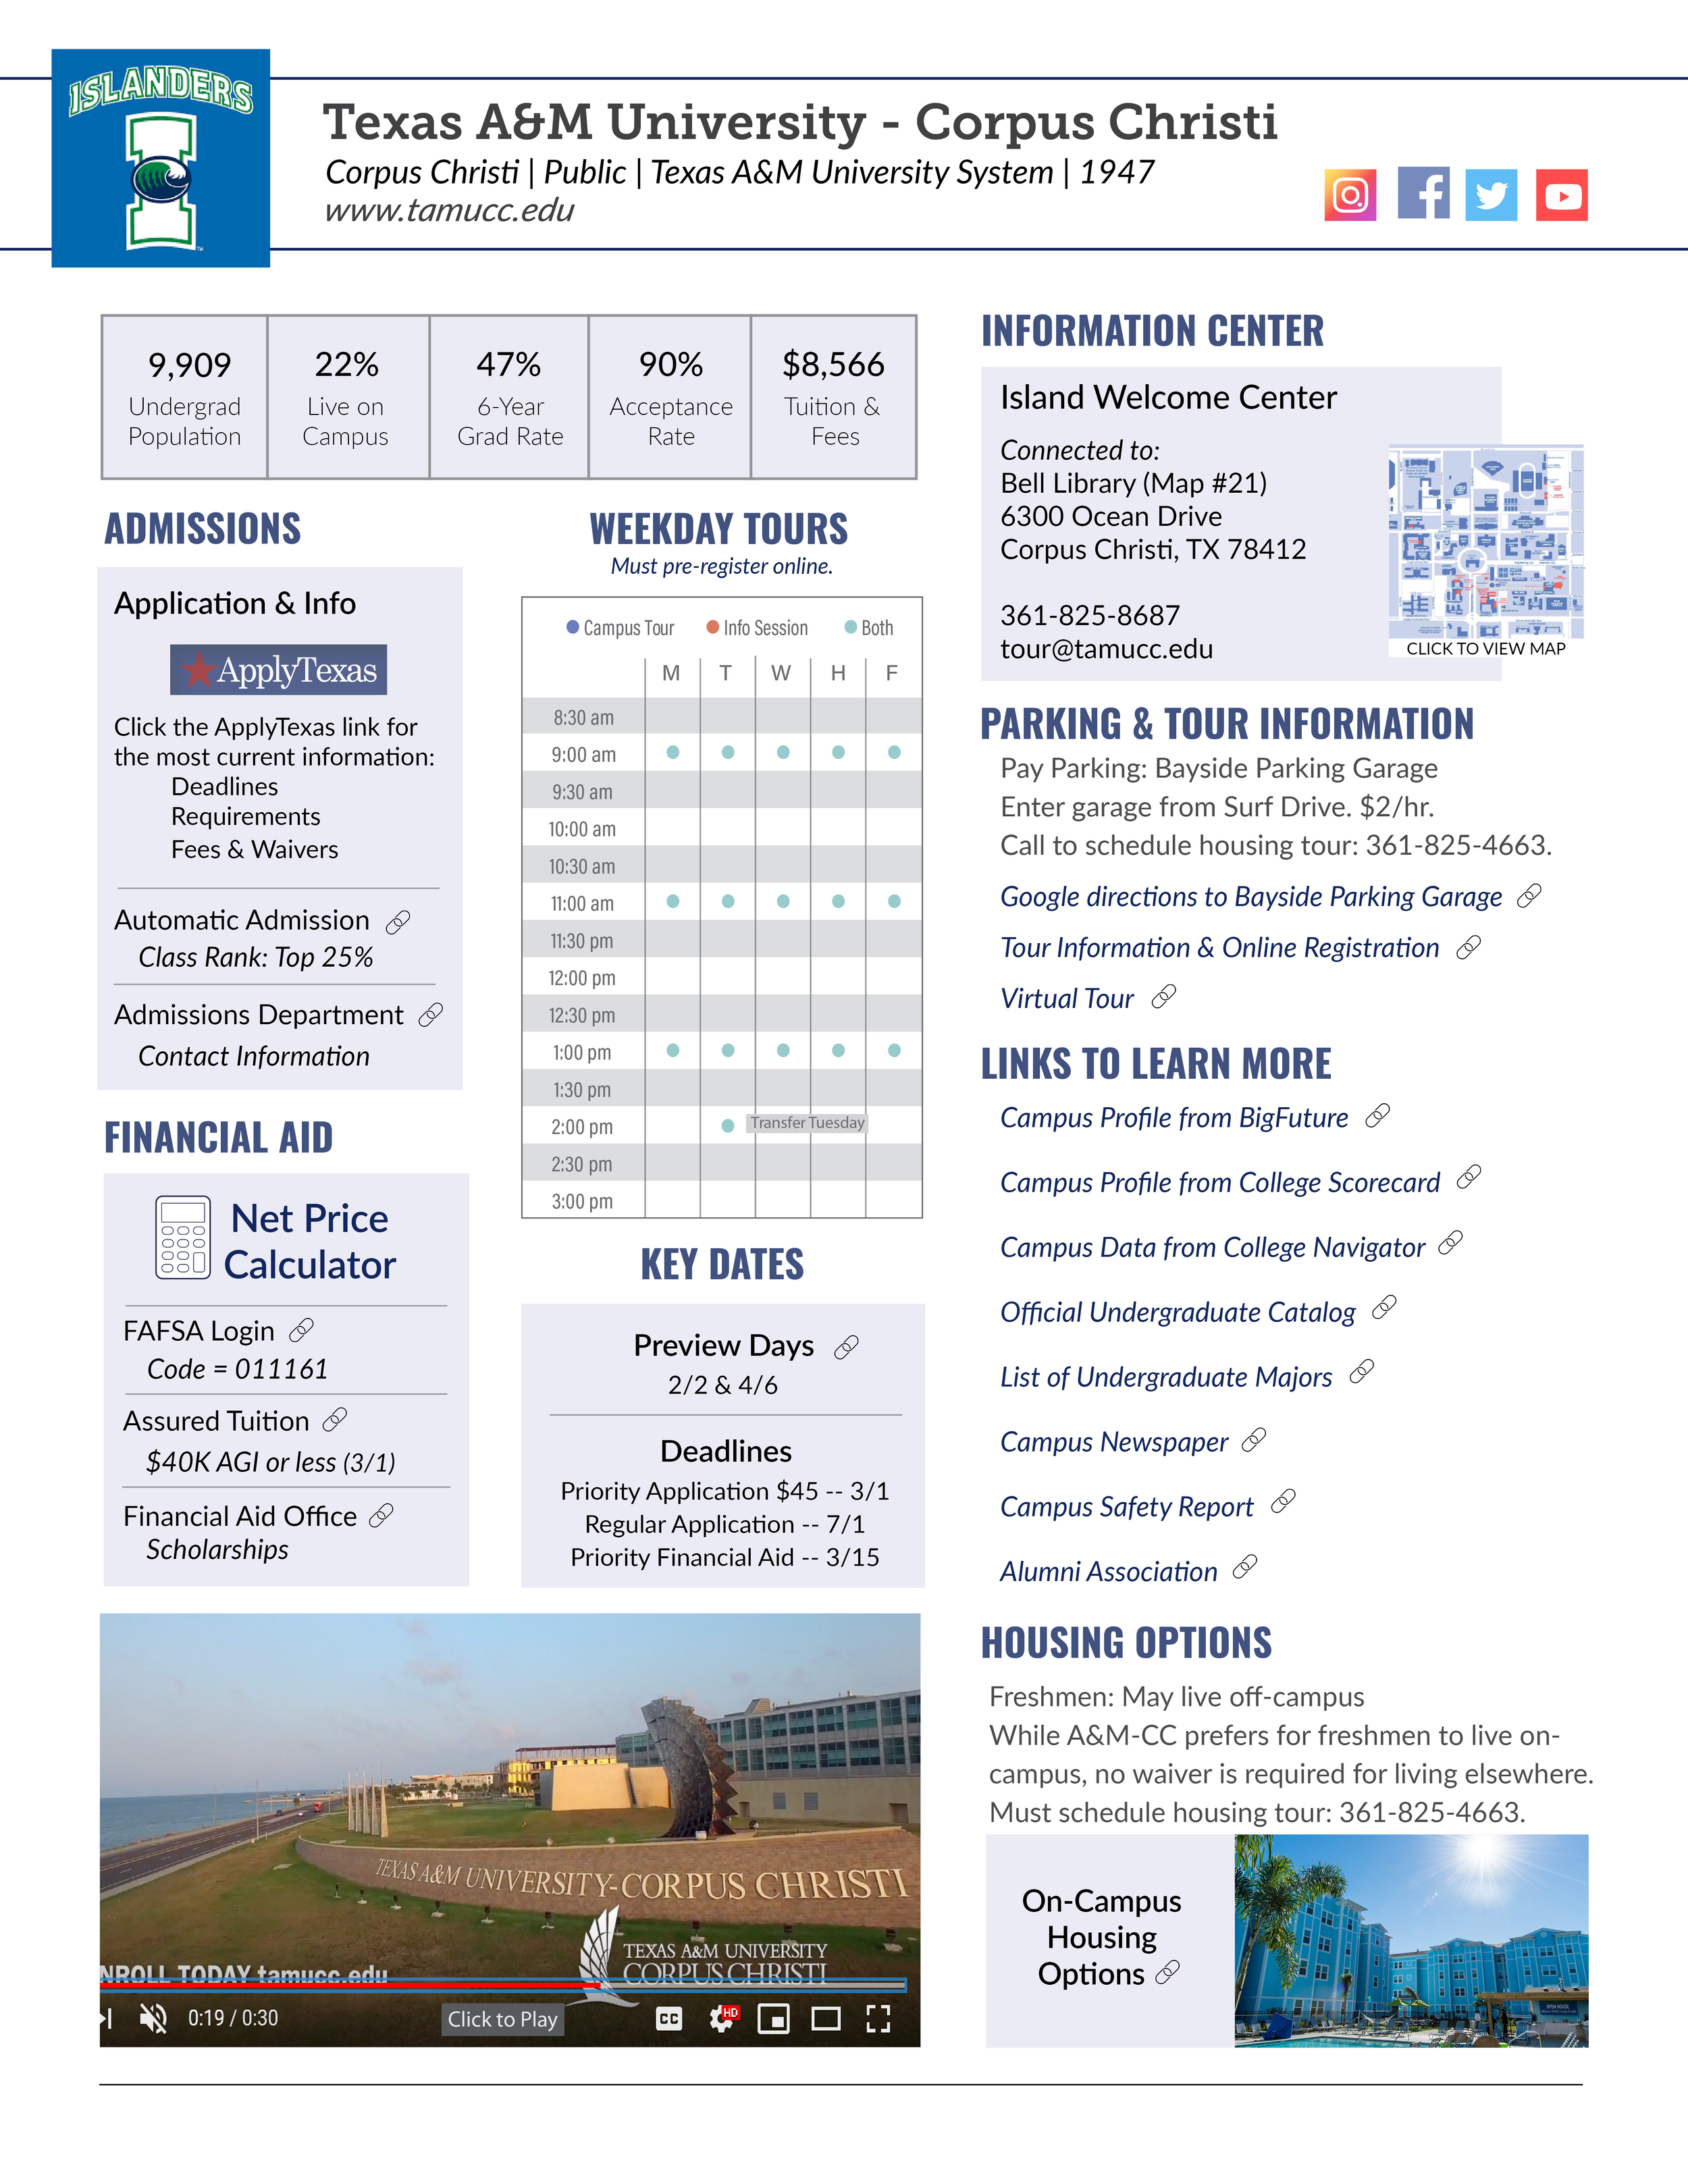 Example of Campus Guide: Texas A&M - Corpus Christi